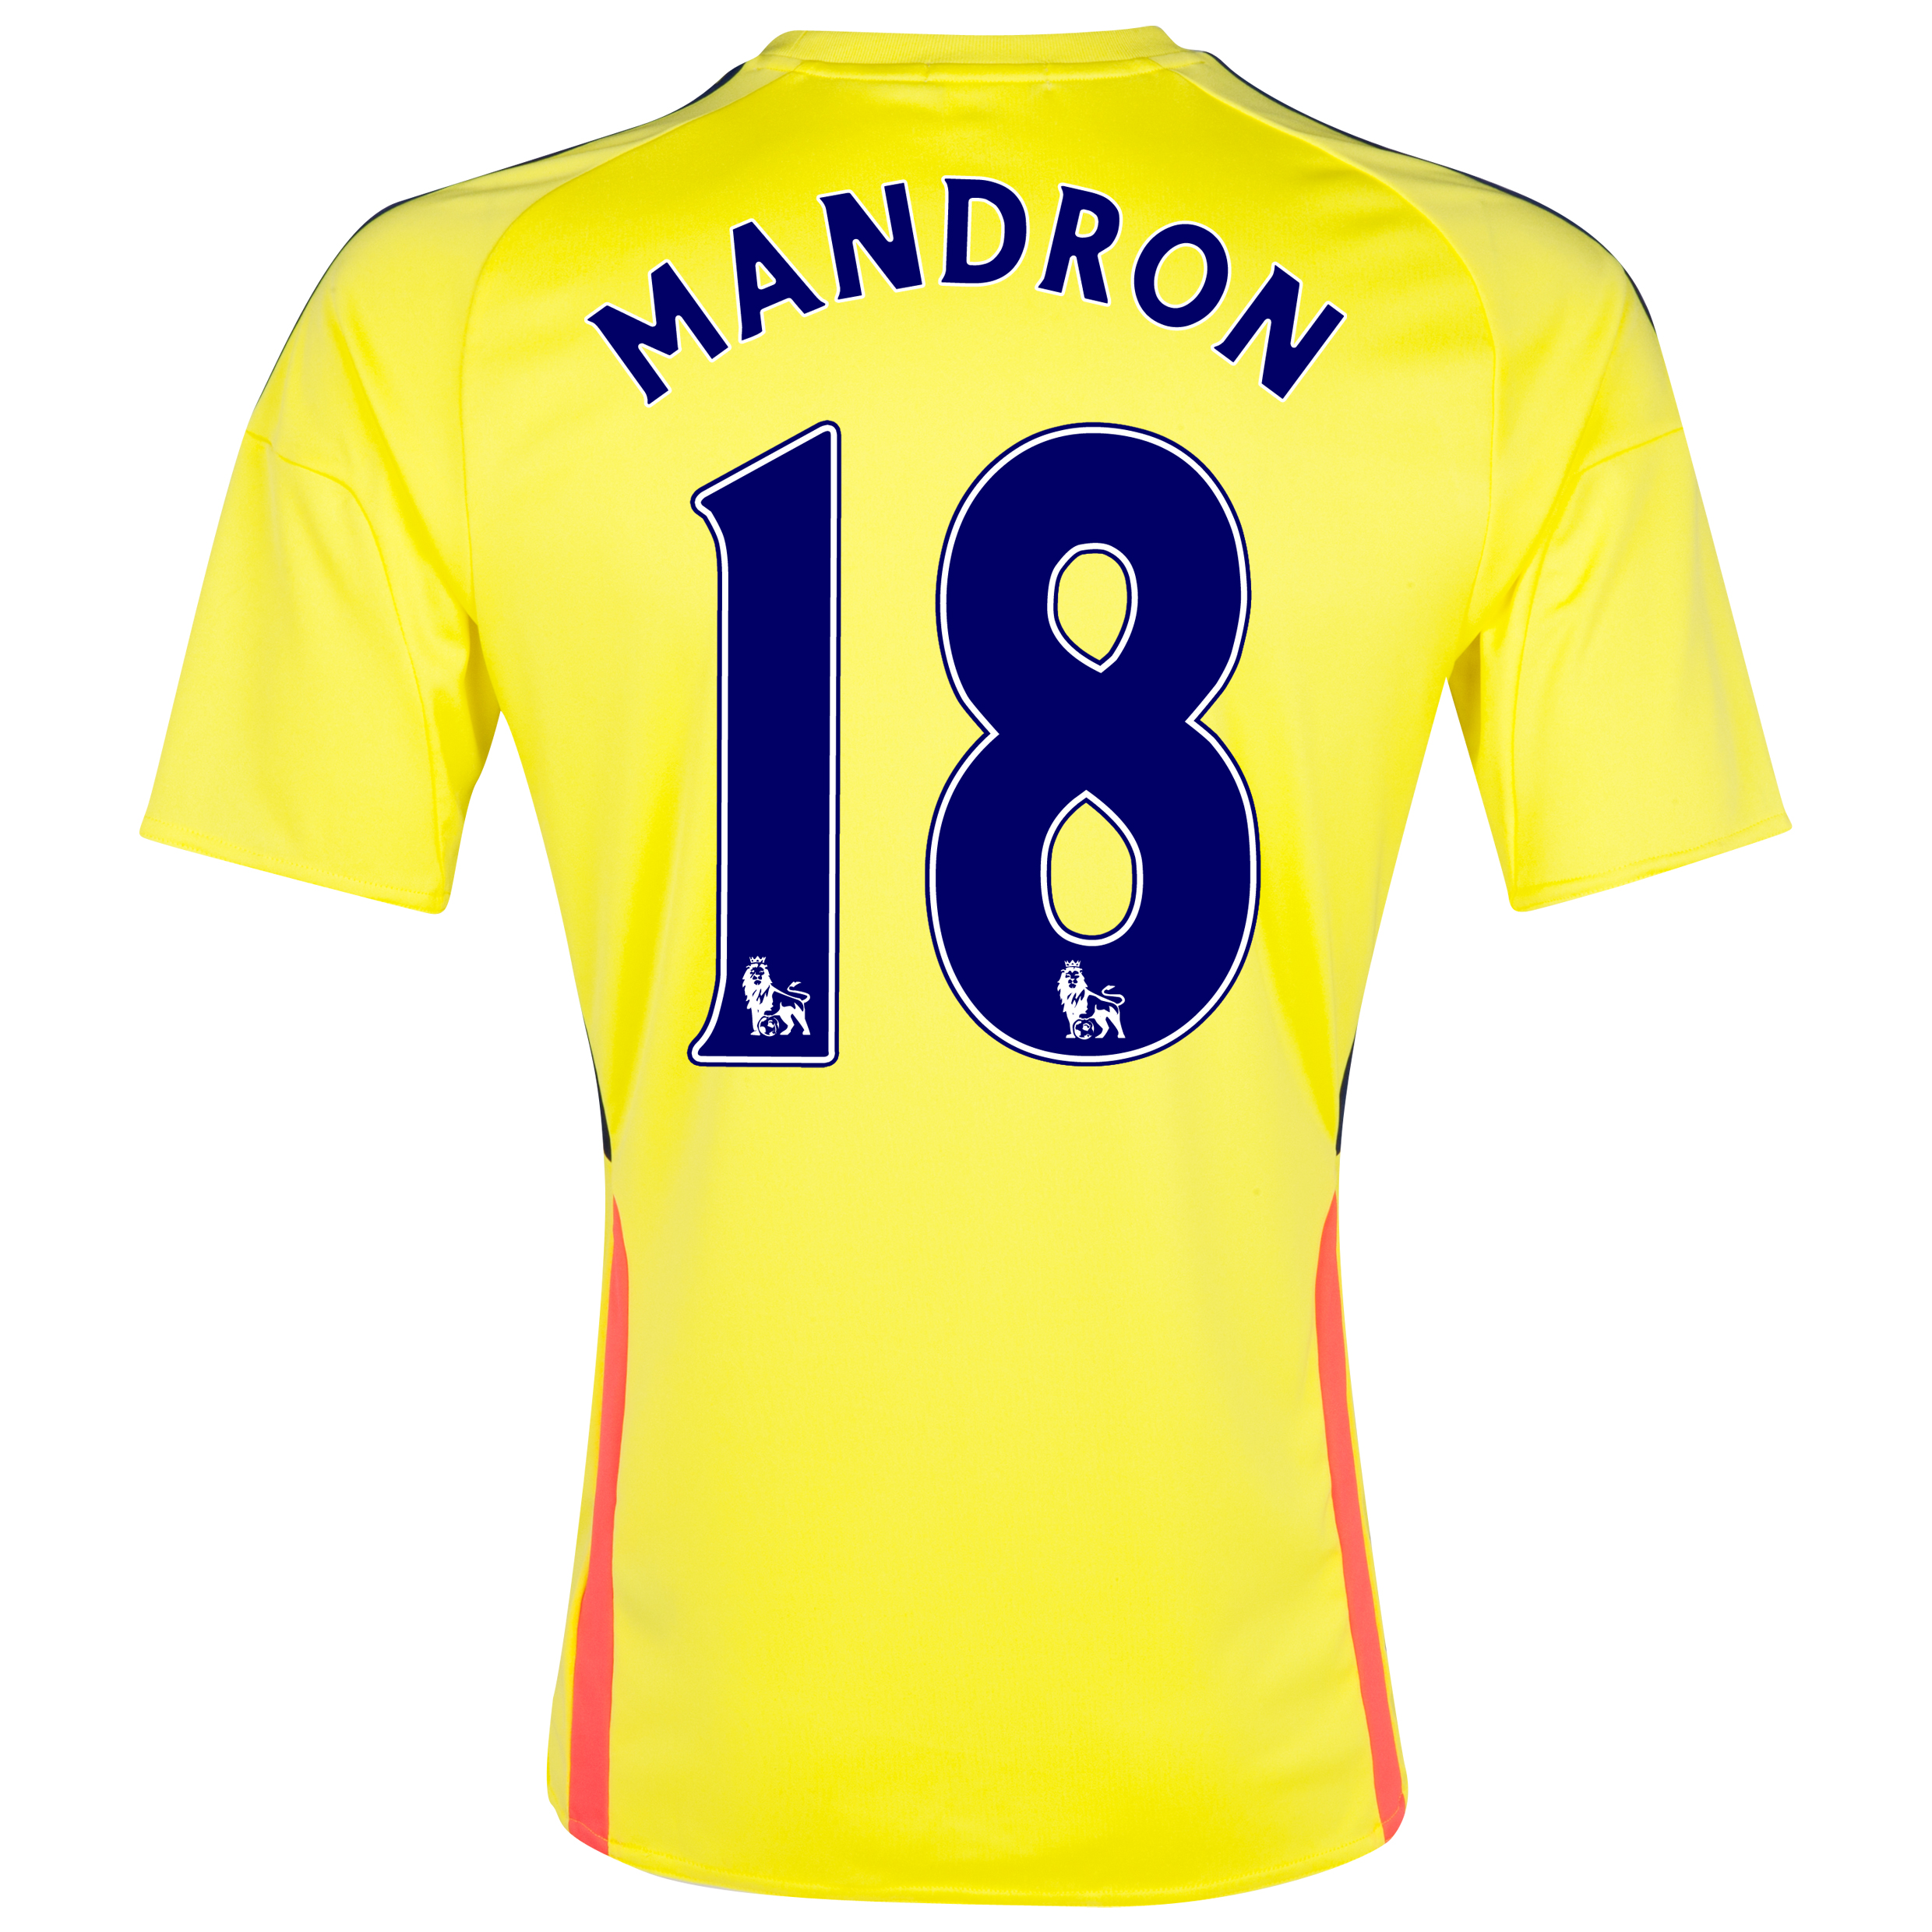 Sunderland Away Shirt 2013/14 - Junior with Mandron 18 printing